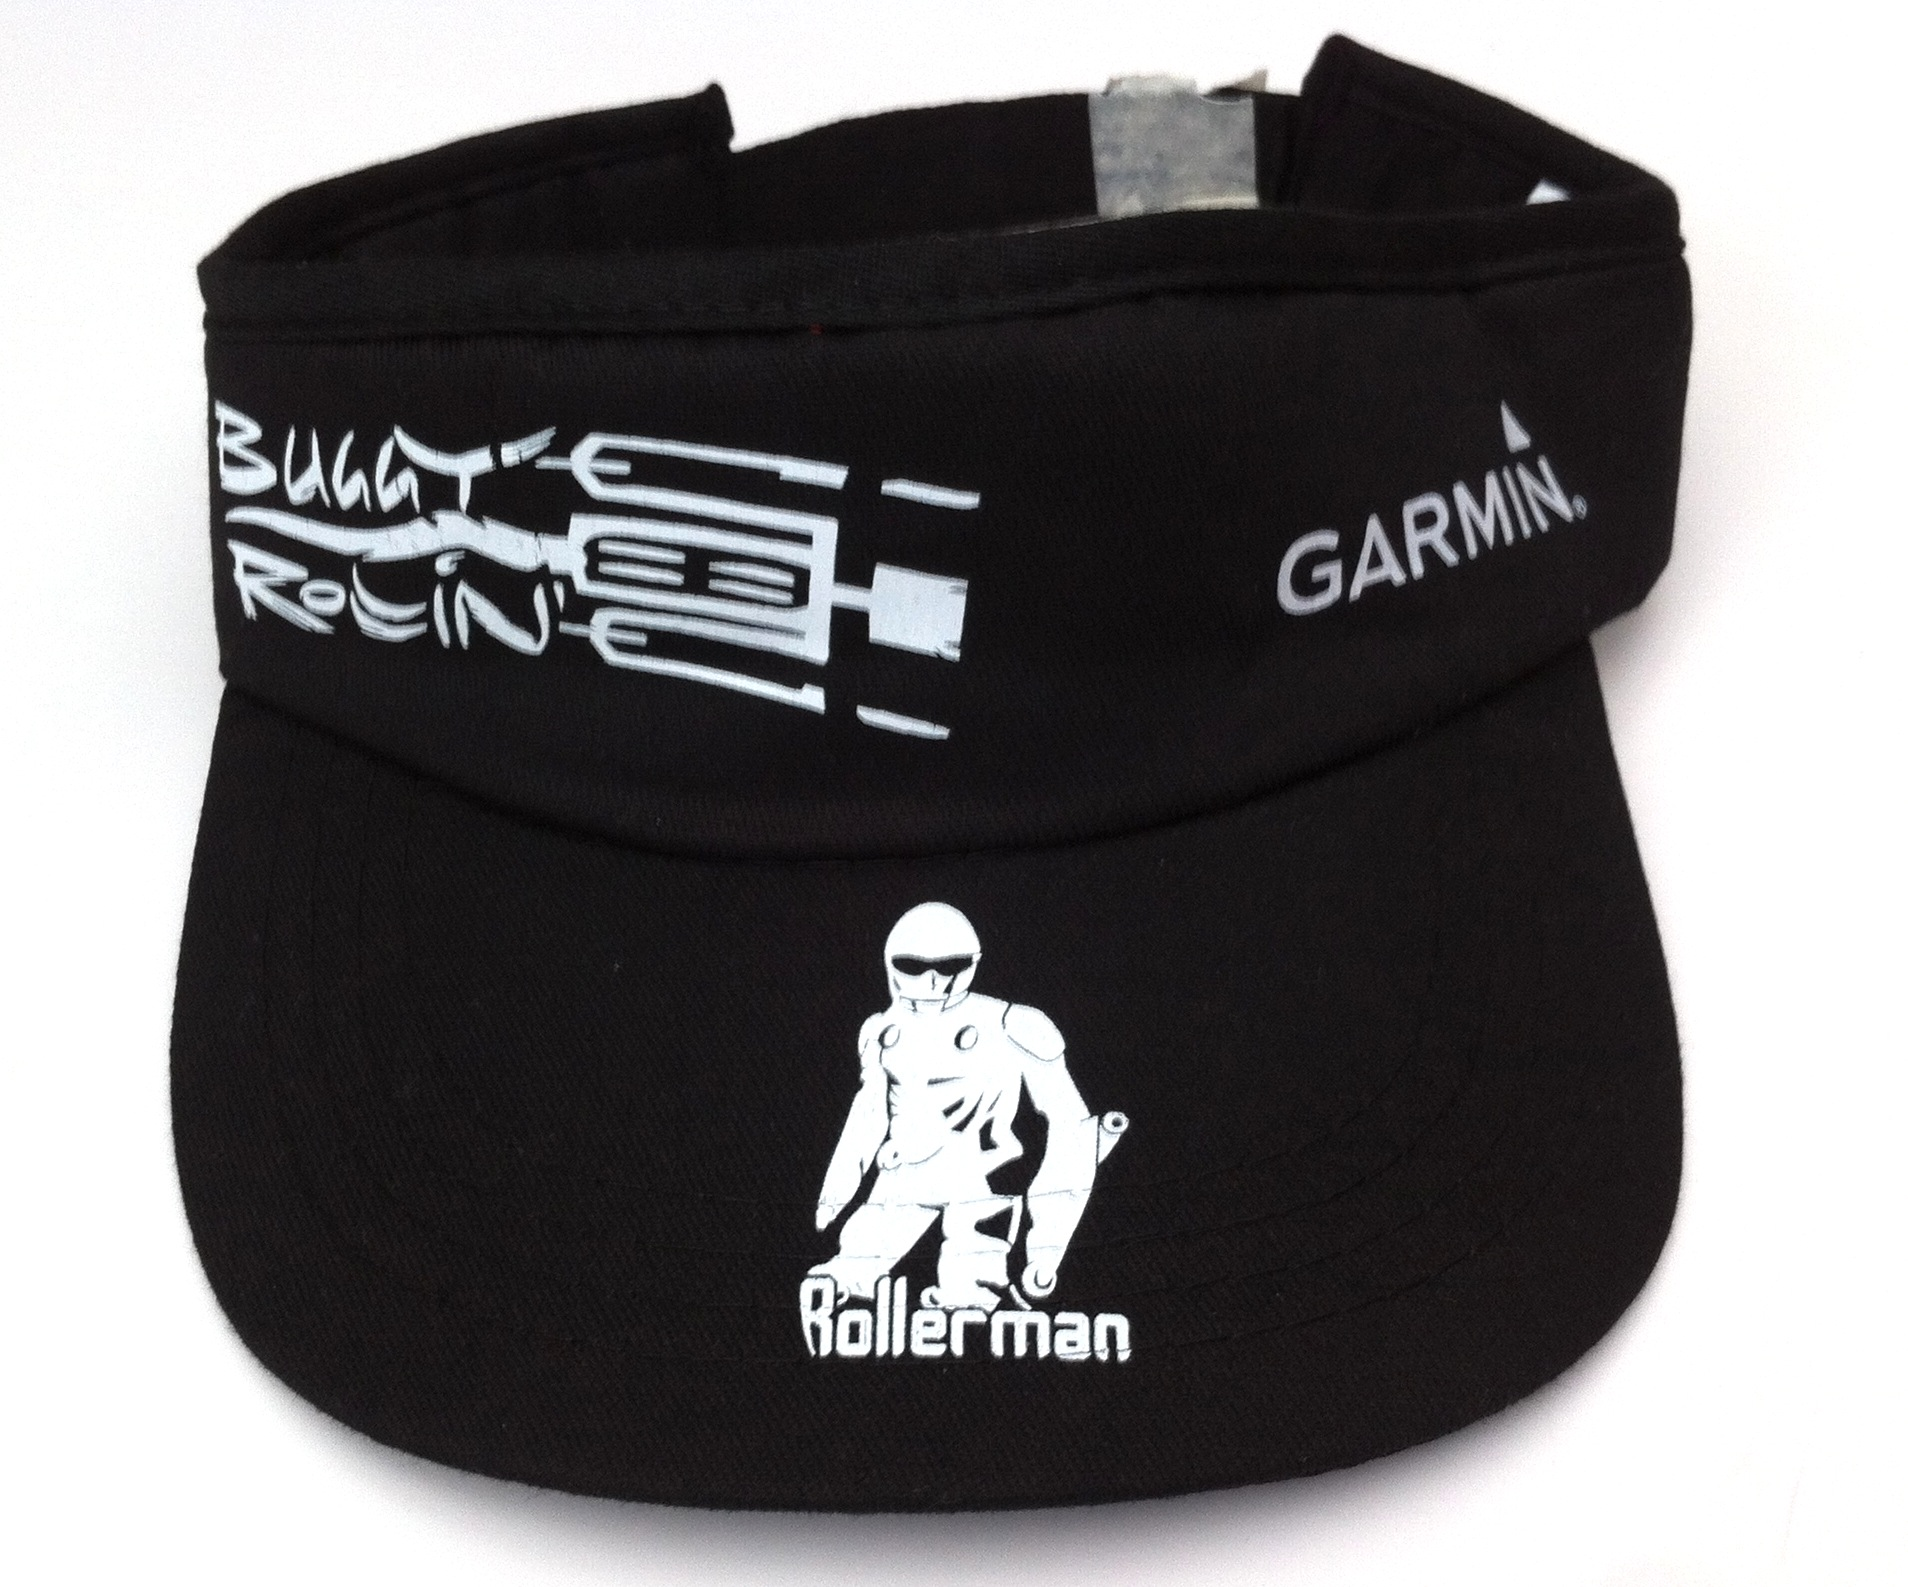 garmin buggy rollin golf cap close up